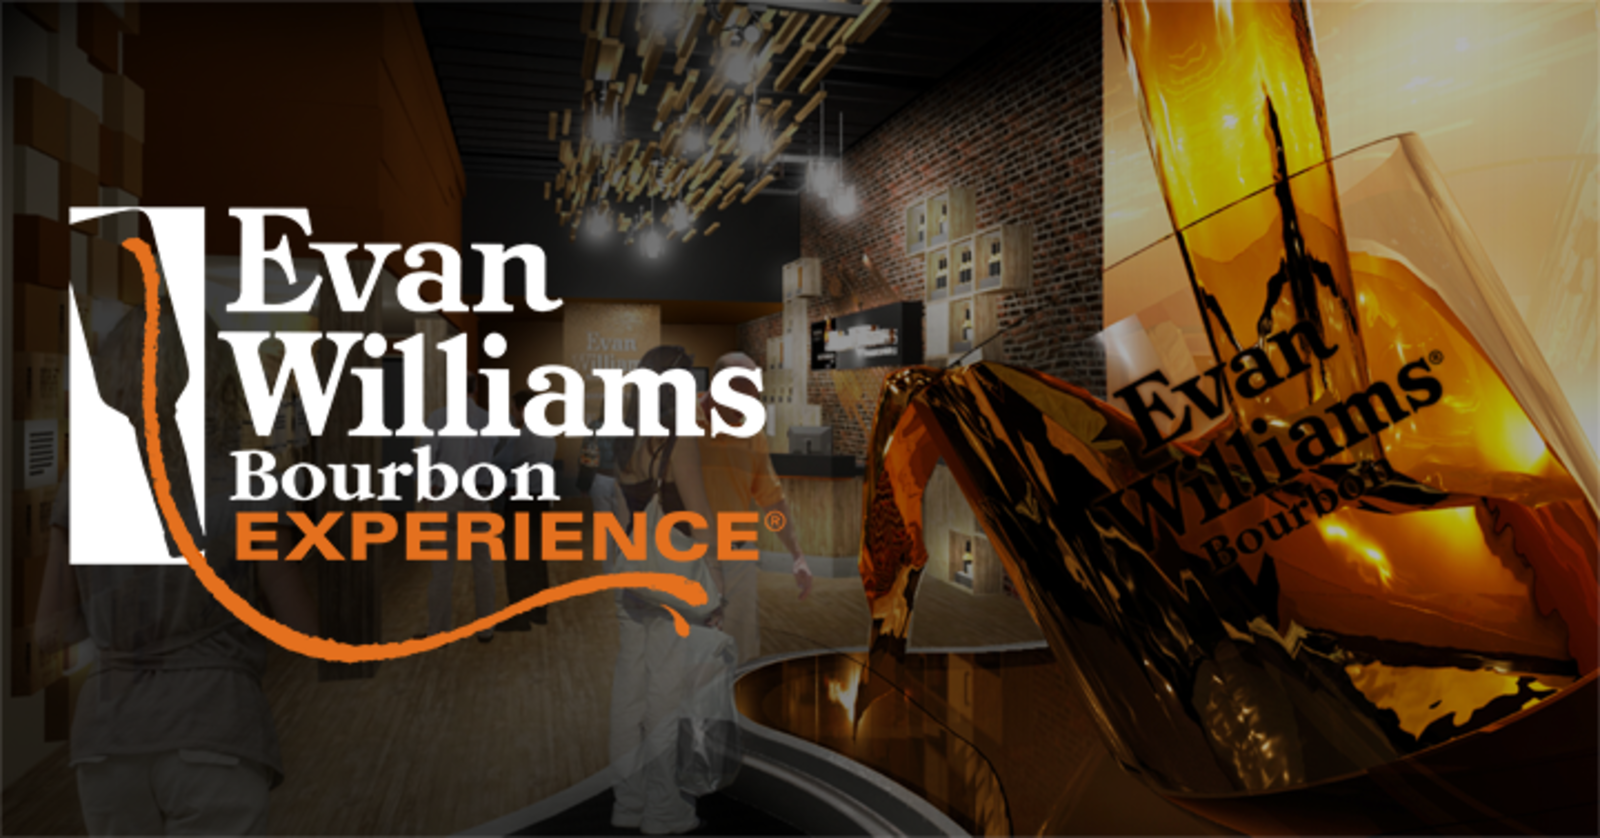 Discover the Evan Williams Bourbon Experience in Louisville, Kentucky